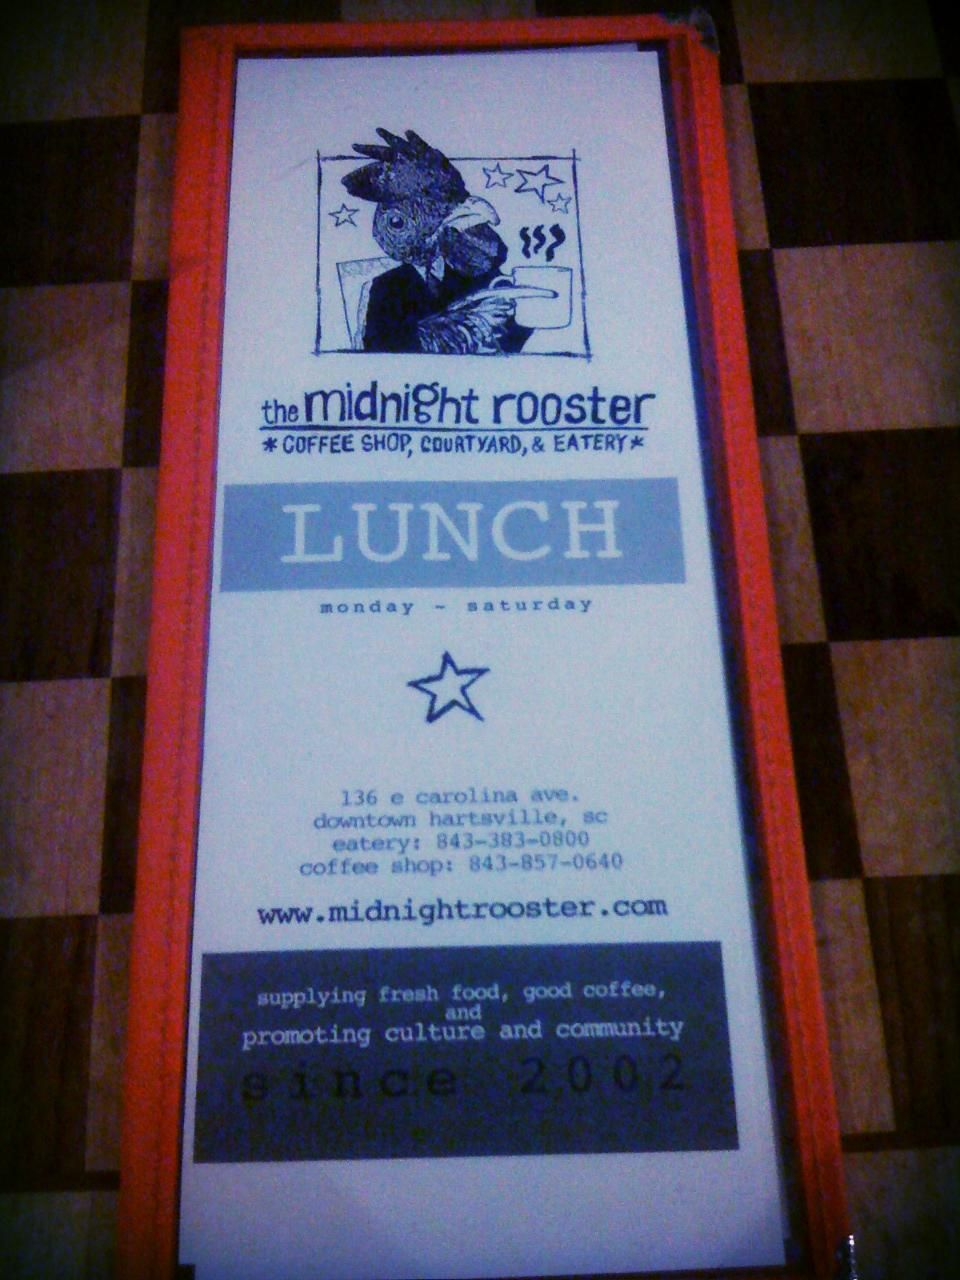 Lunch menu cover of midnight rooster a coffee shop that